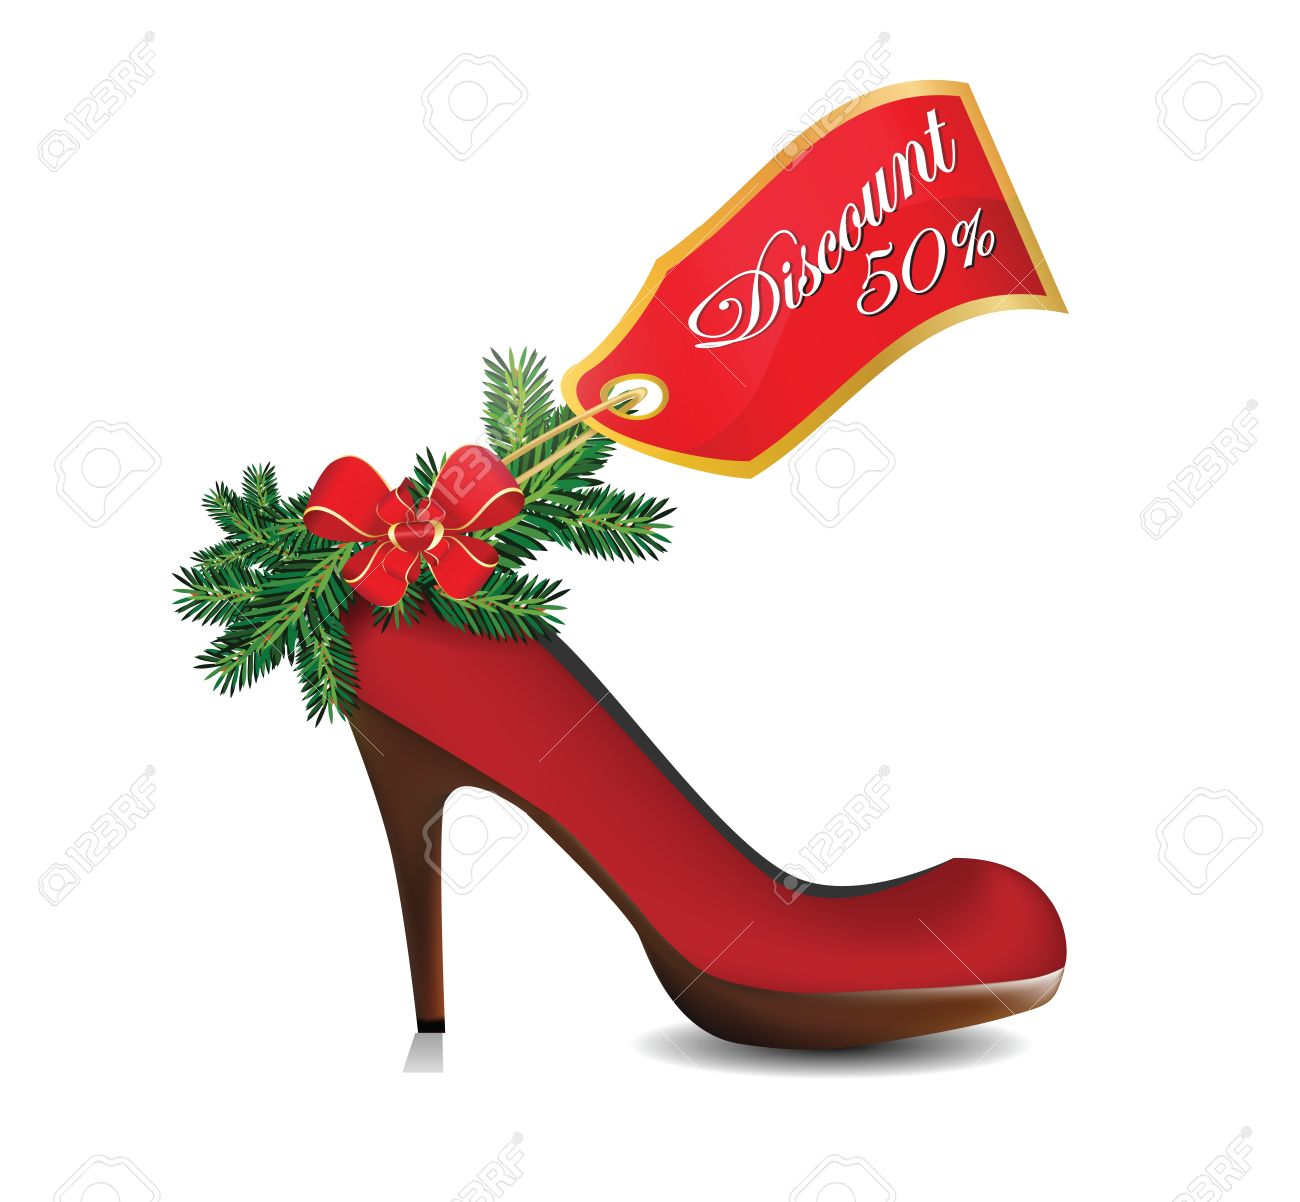 Christmas Shoe.Illustration Of Christmas Discount On Red Shoe